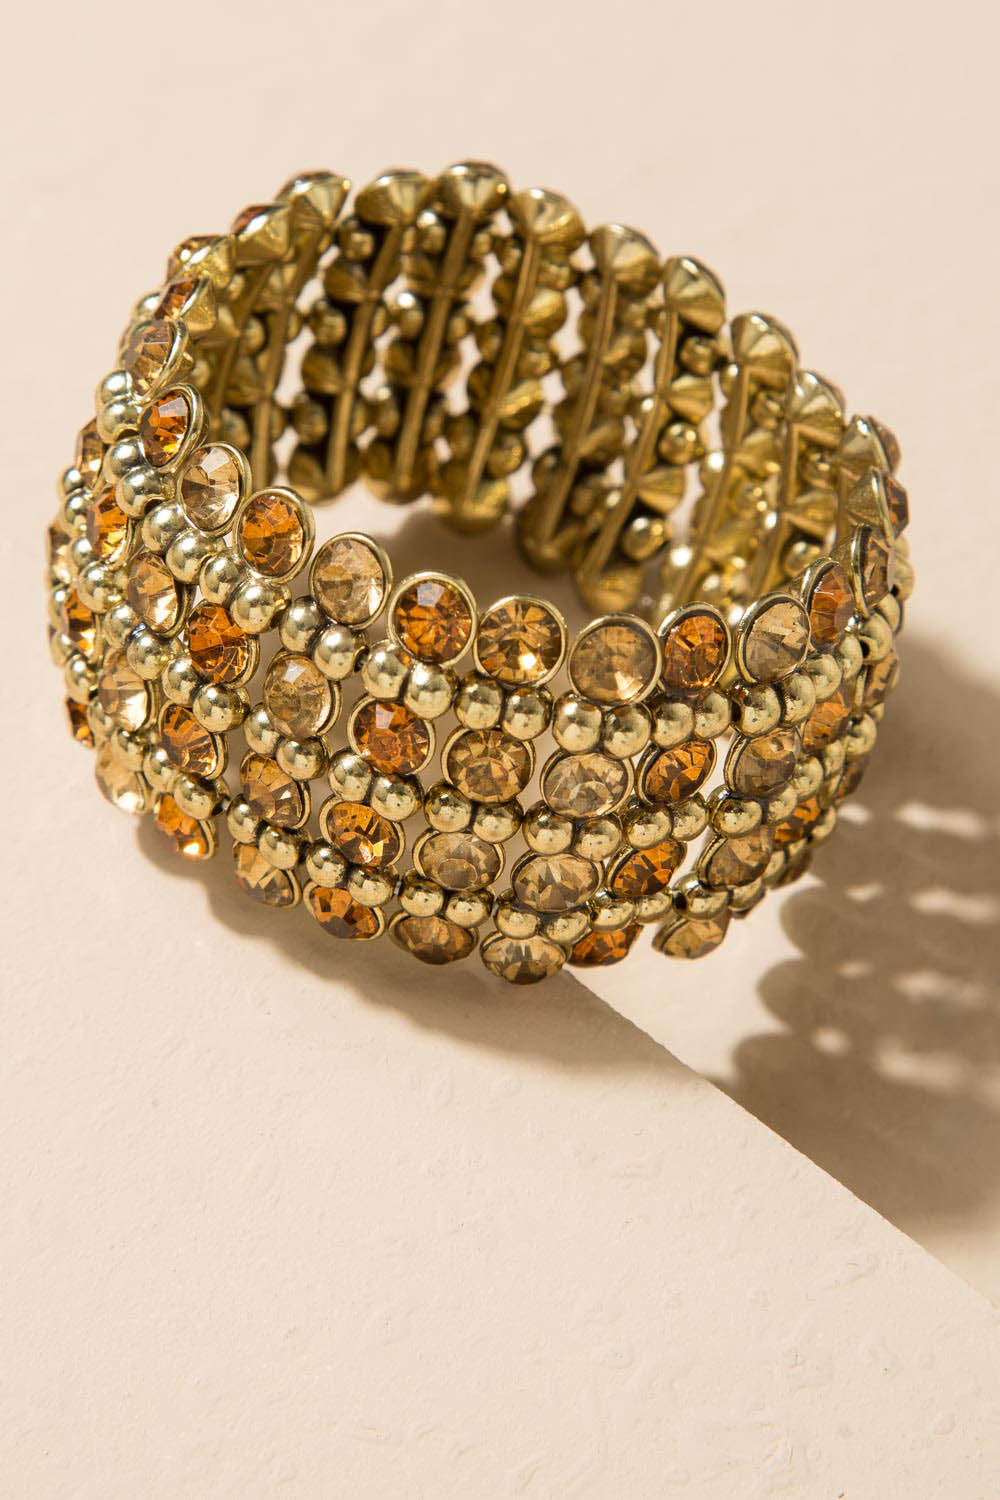 Type 3 Amber and Gold Bracelet